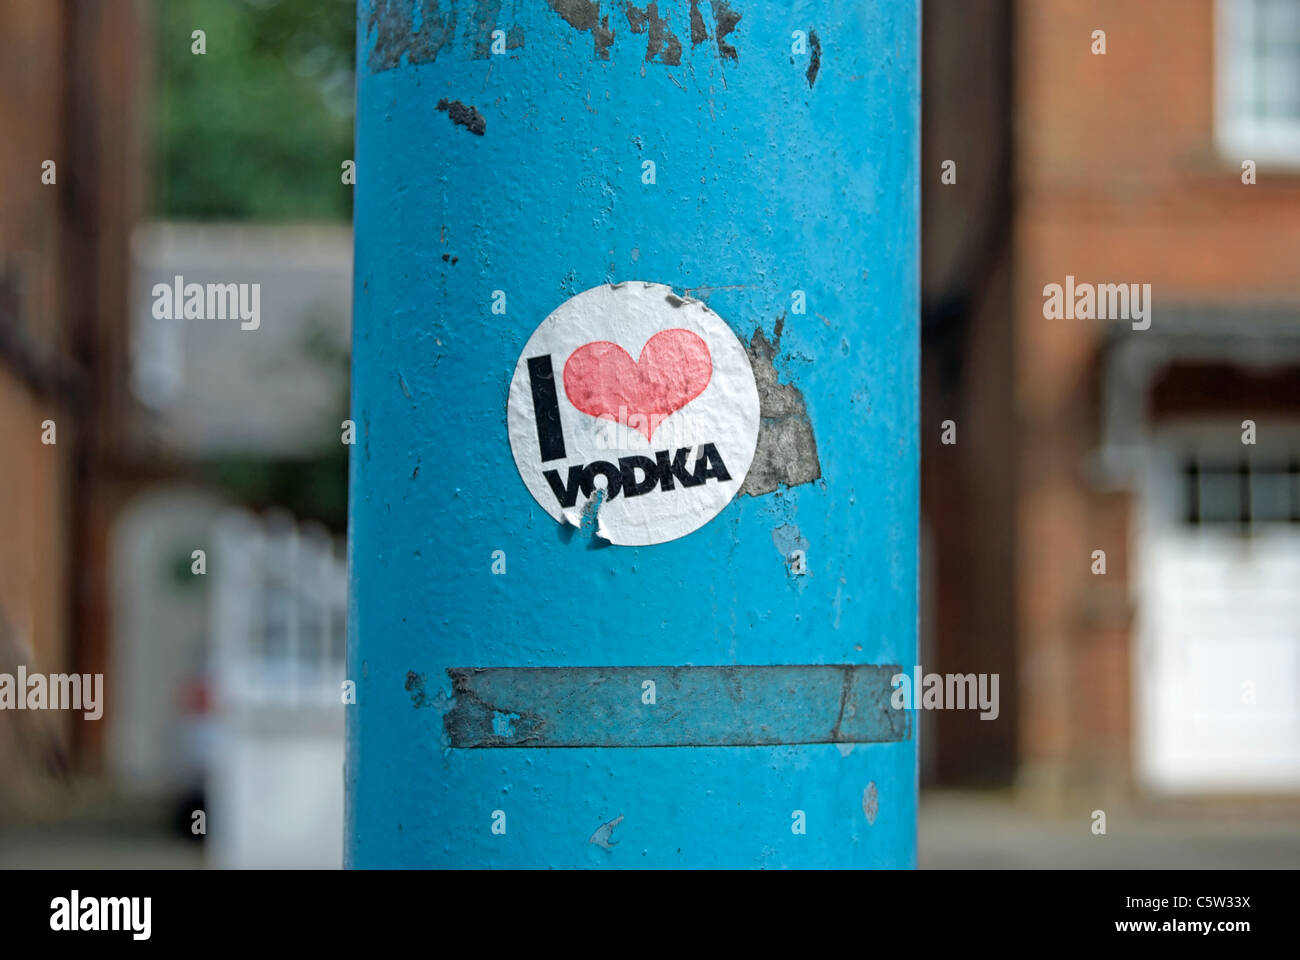 i love vodka sticker on a lamppost in chiswick, west london, england - Stock Image